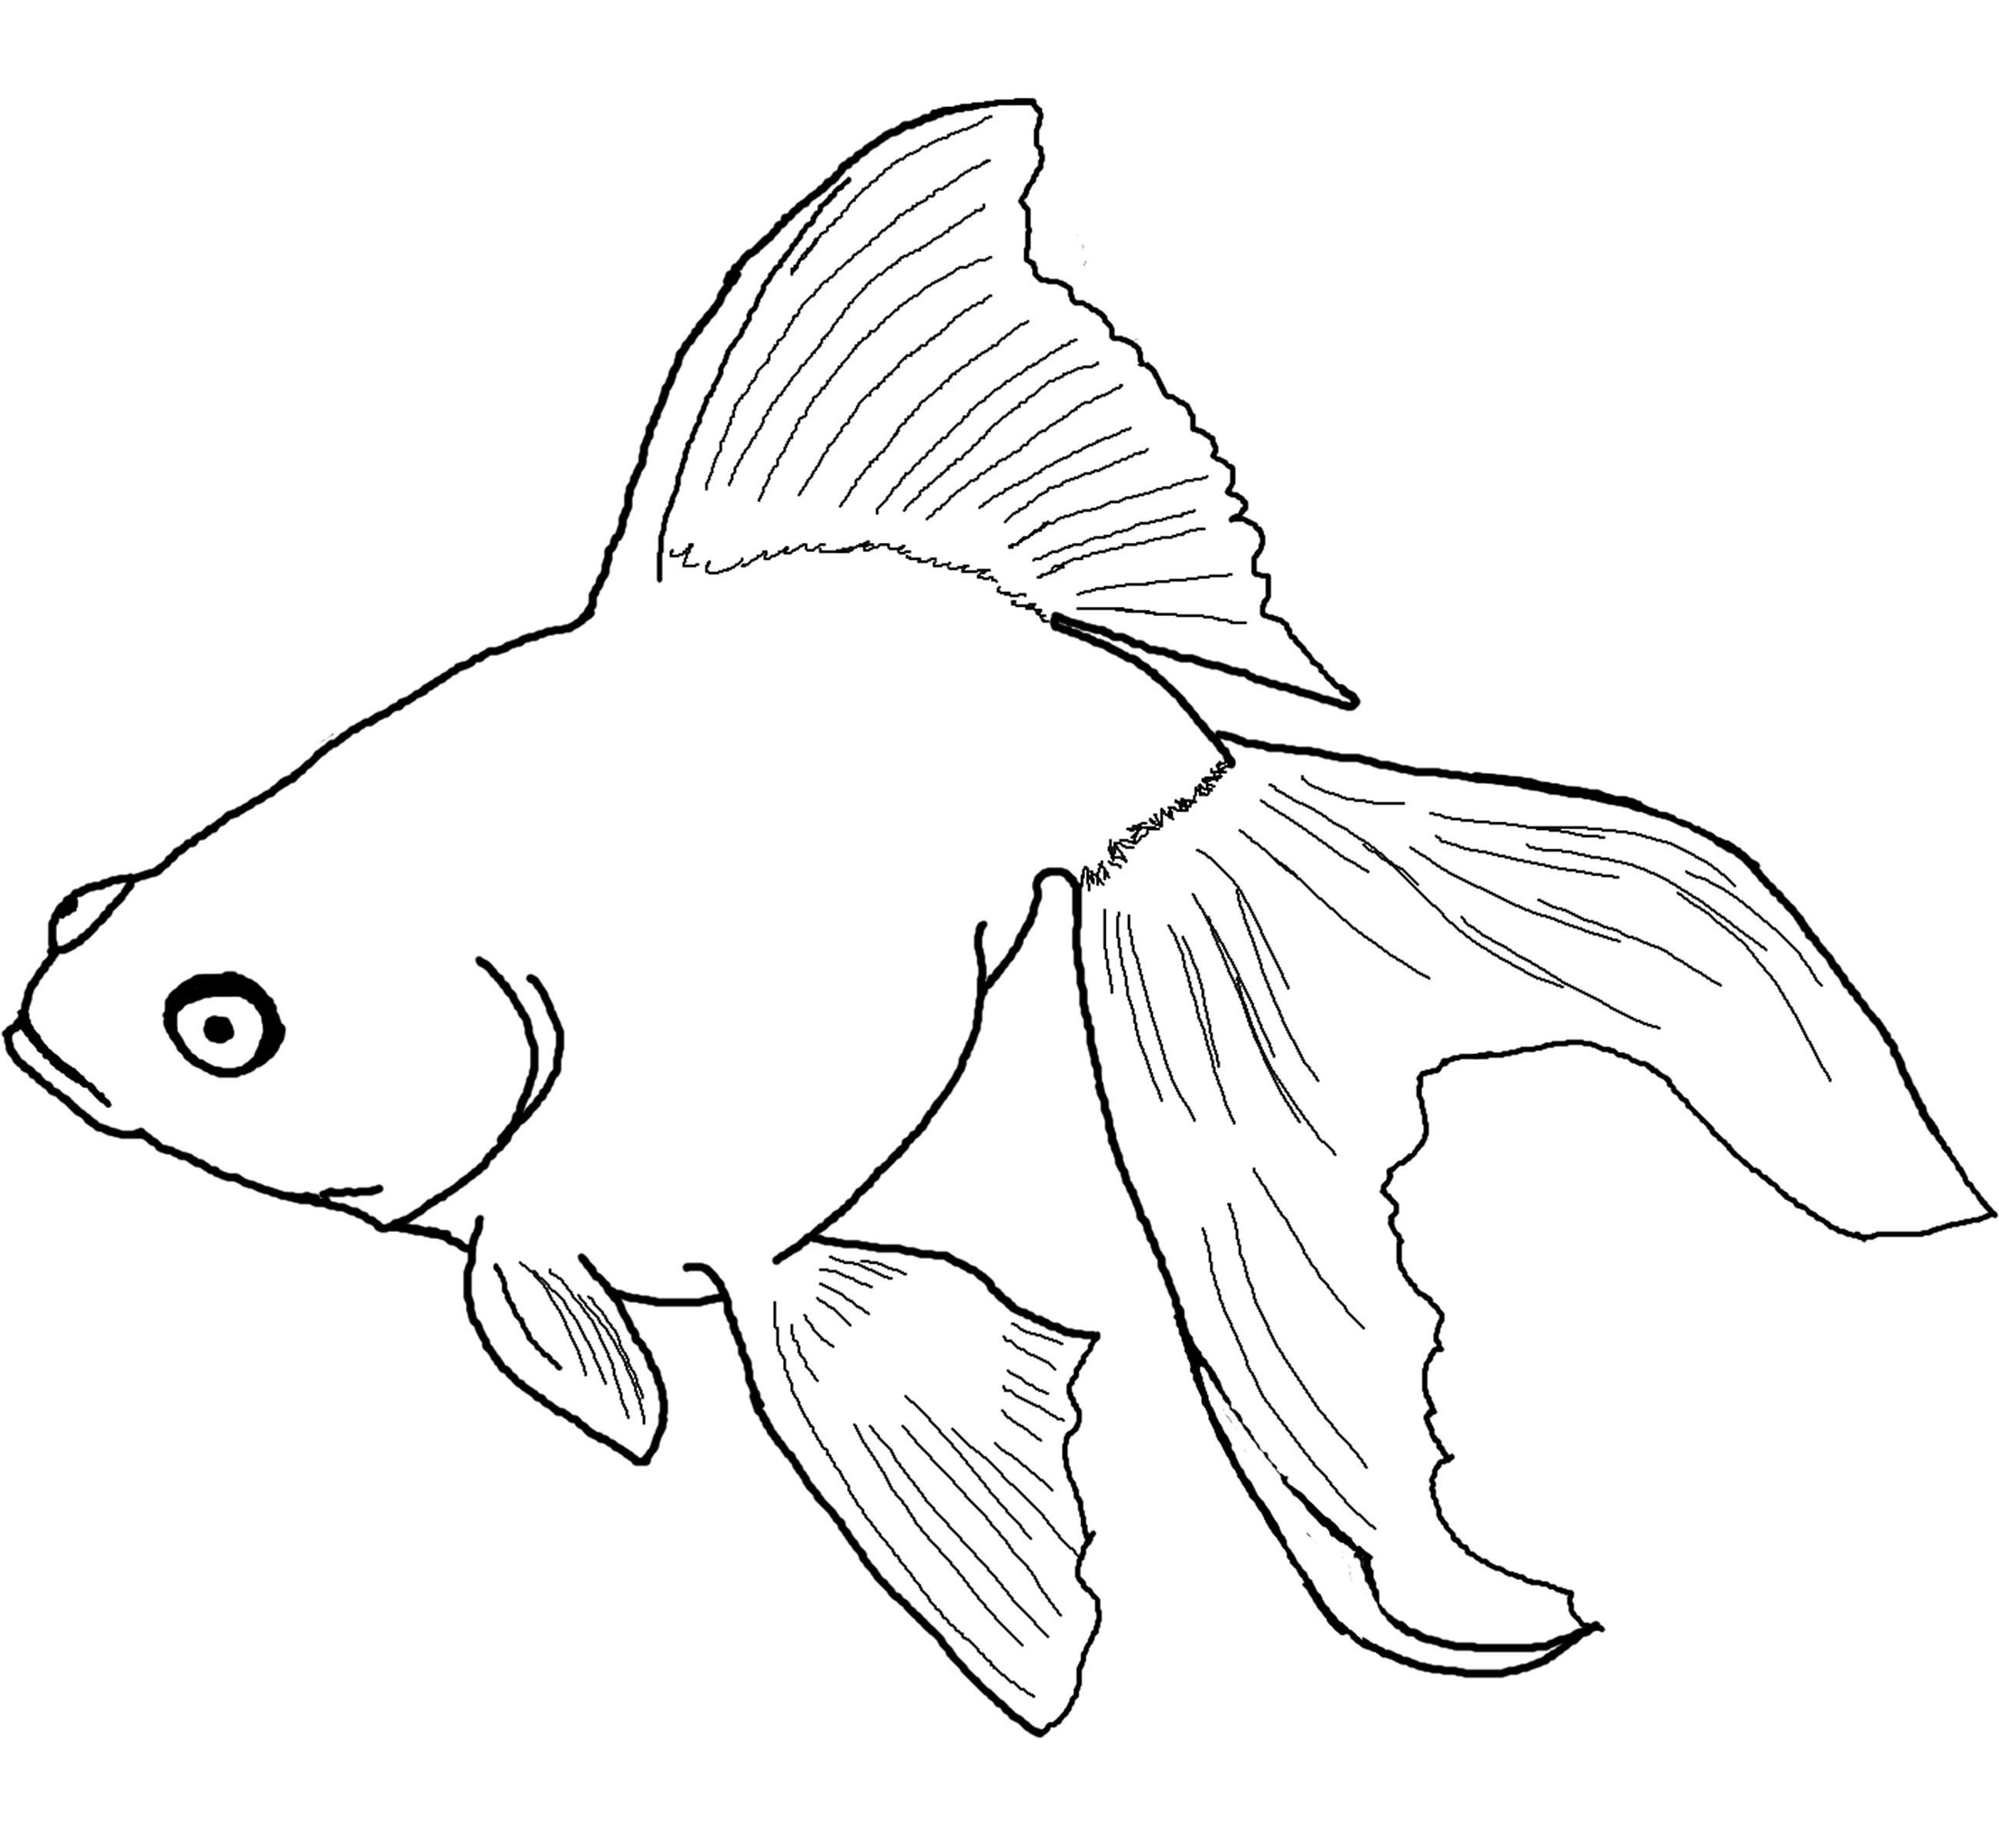 fish color pages for your kids to train their creativity in coloring